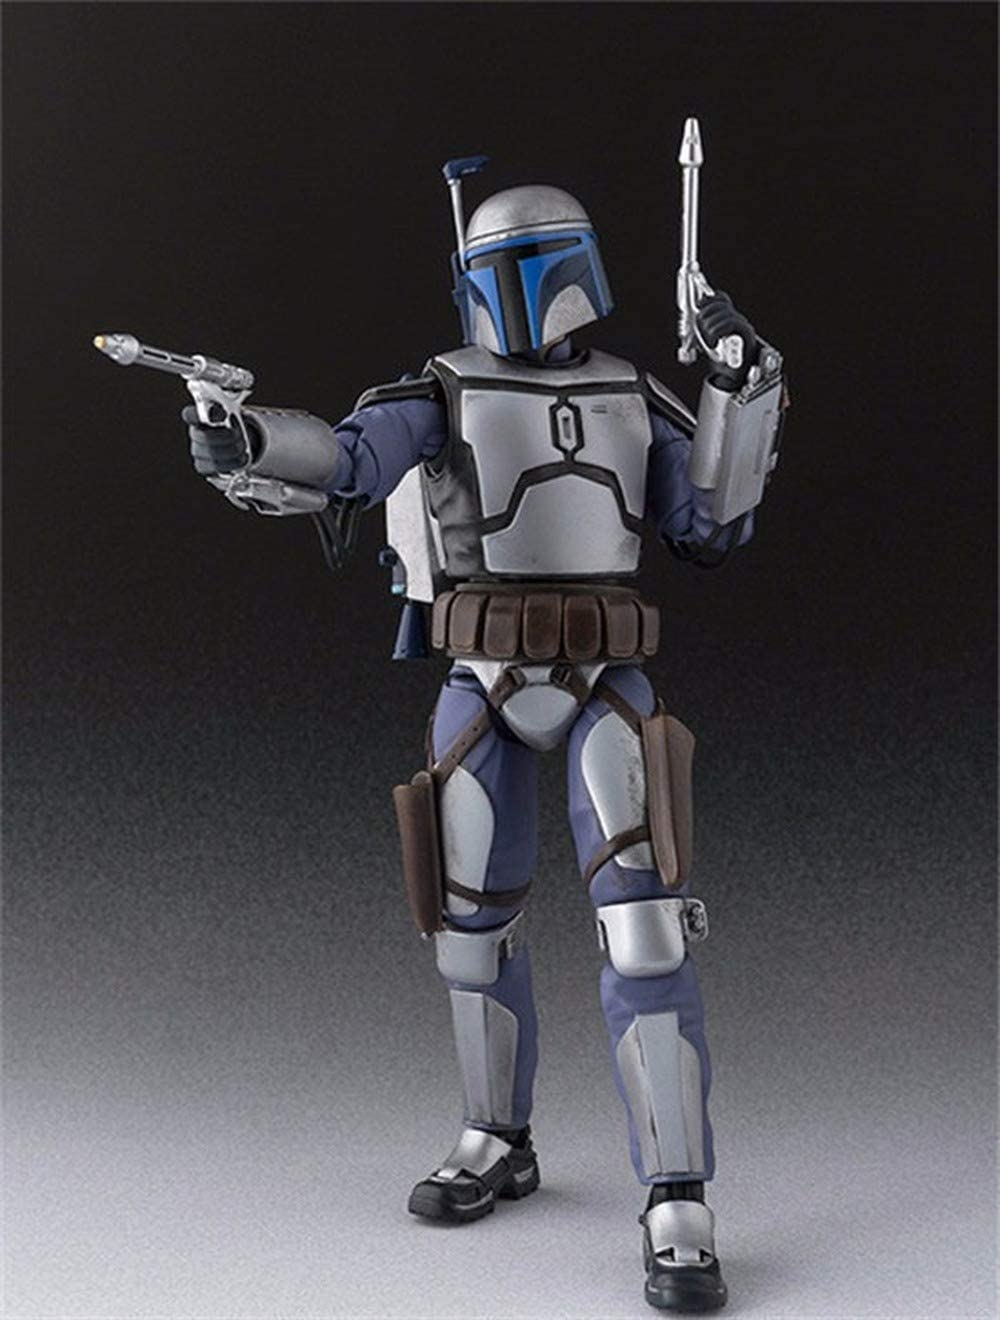 POP Star Wars Super Movable Bounty Hunter Jango Fett Boxed Movable Boxed Handmade, Toy Statue Model Desktop Decoration, PVC Collection Craft Decoration Gift Height About 15CM